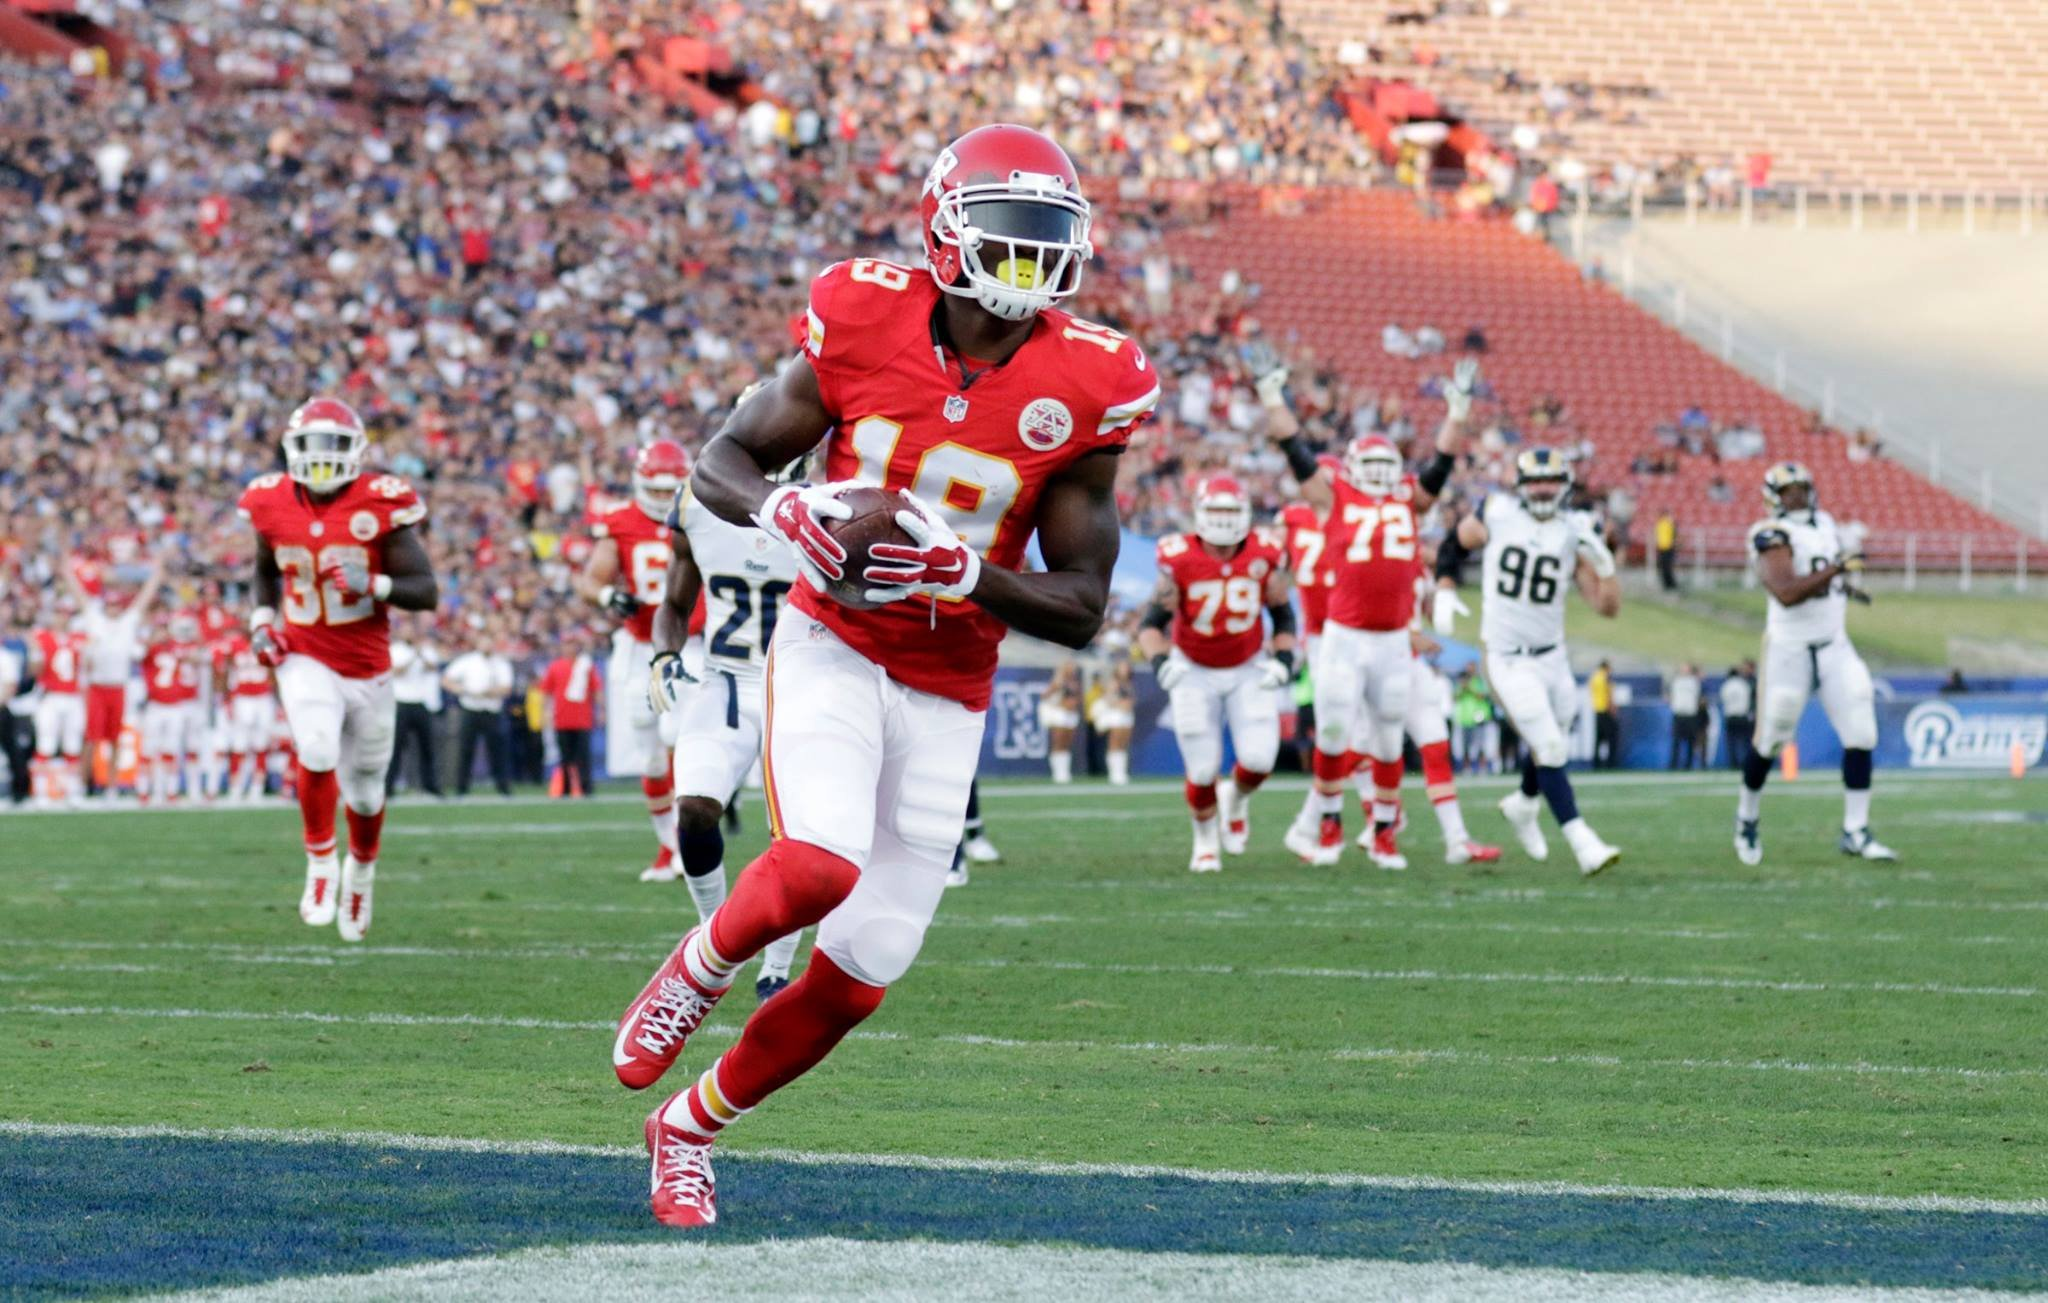 Kansas City Chiefs wide receiver Jeremy Maclin got married this weekend. (KCTV5)